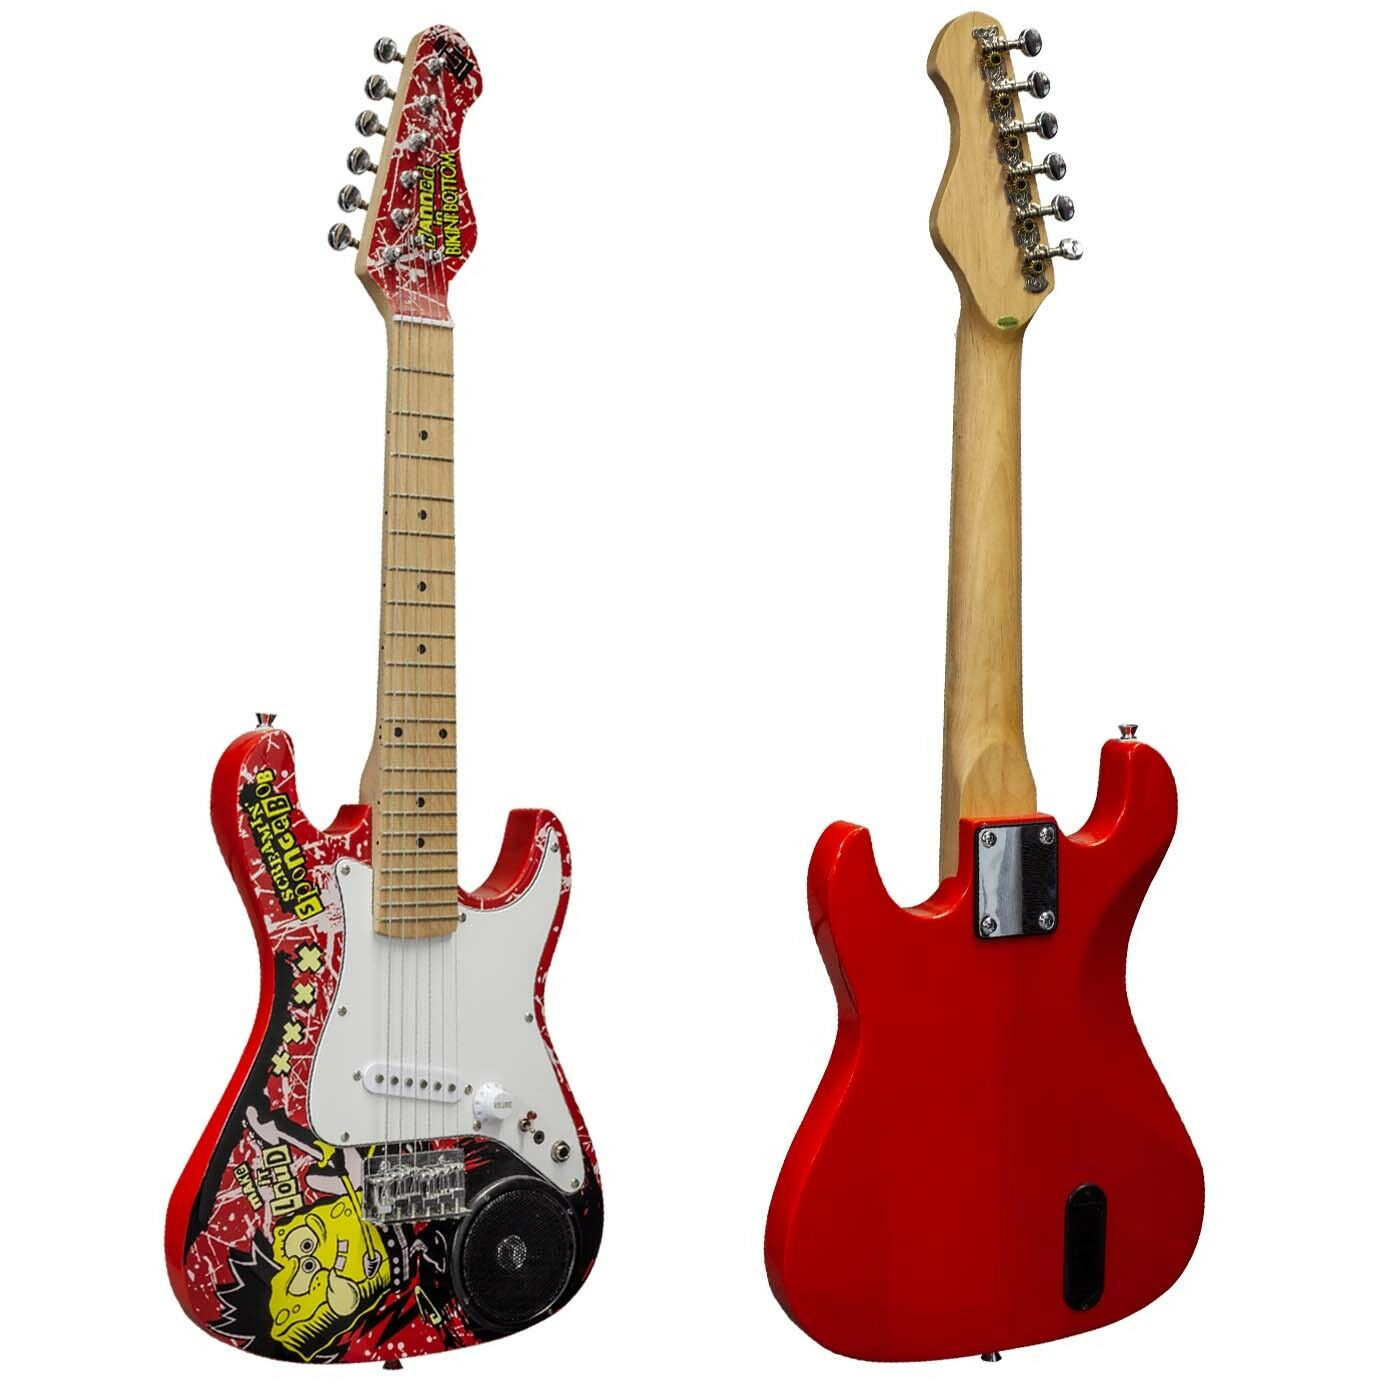 Spongebob 3 4 Größe Electric Guitar with Built In Speaker, Bag & Strap